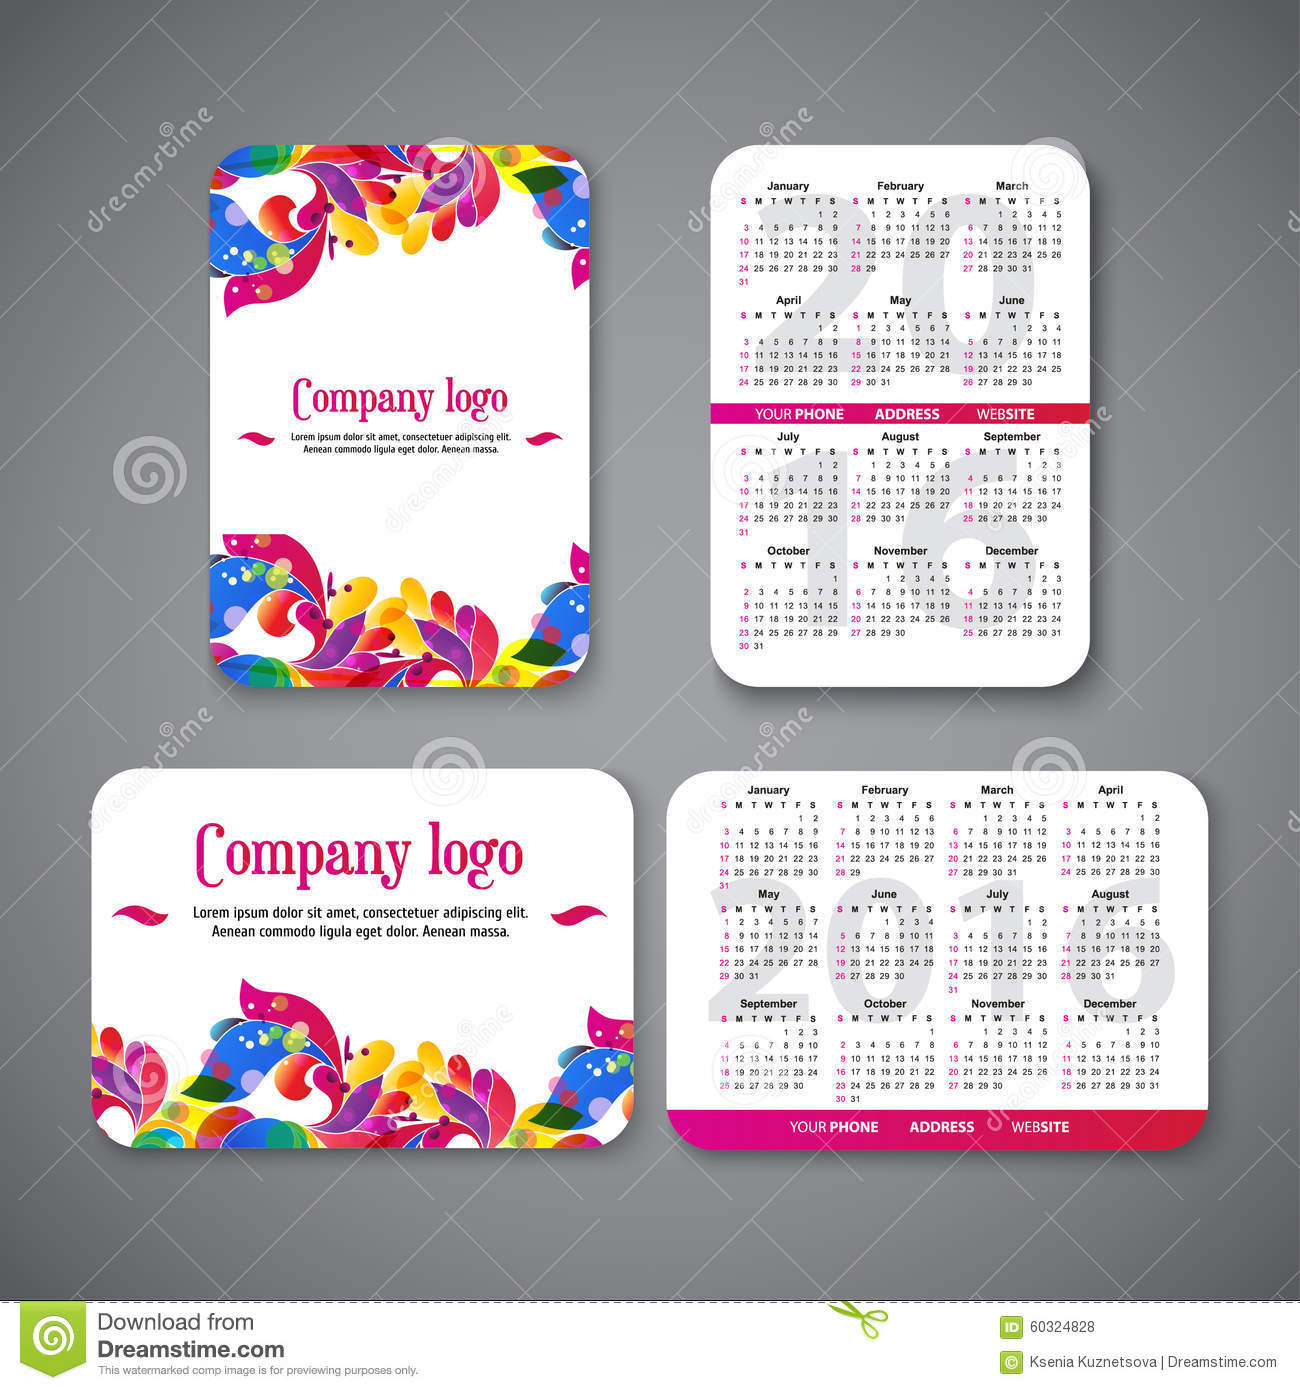 Template Design Pocket Calendar 2016 With Patterns Stock Vector.